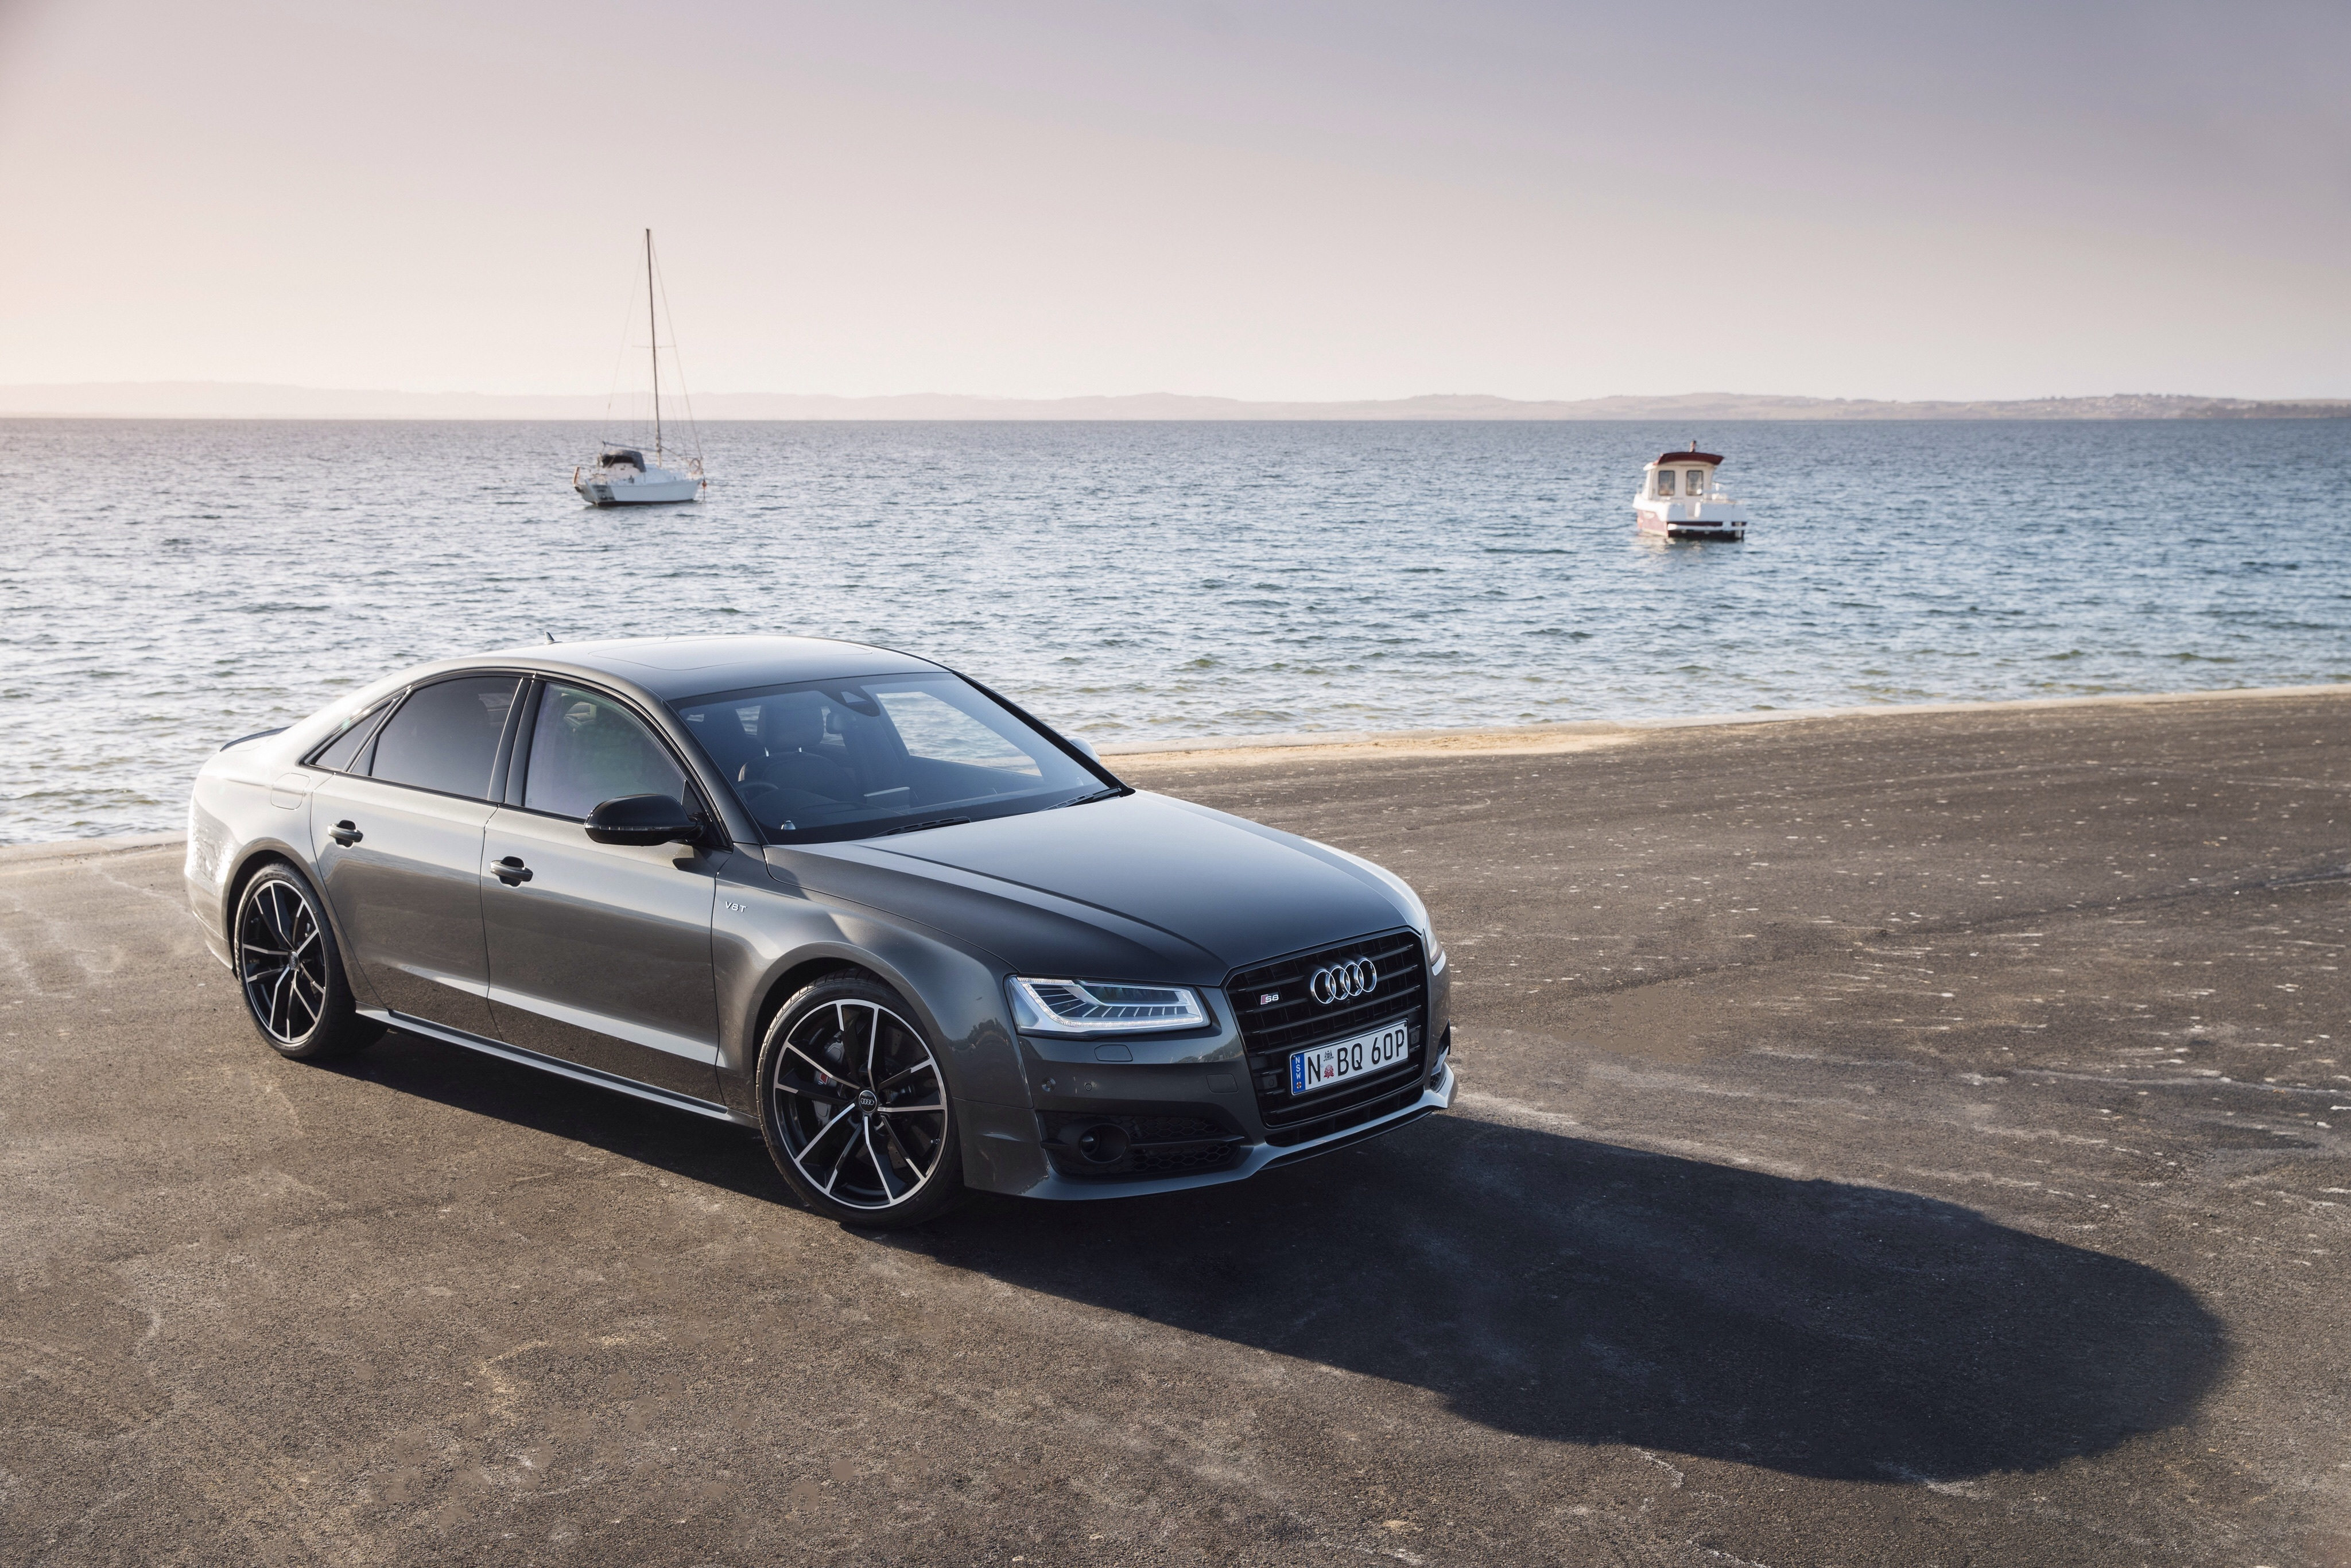 Audi S8 Wallpapers 1080p J3563M5   4USkY 4096x2732